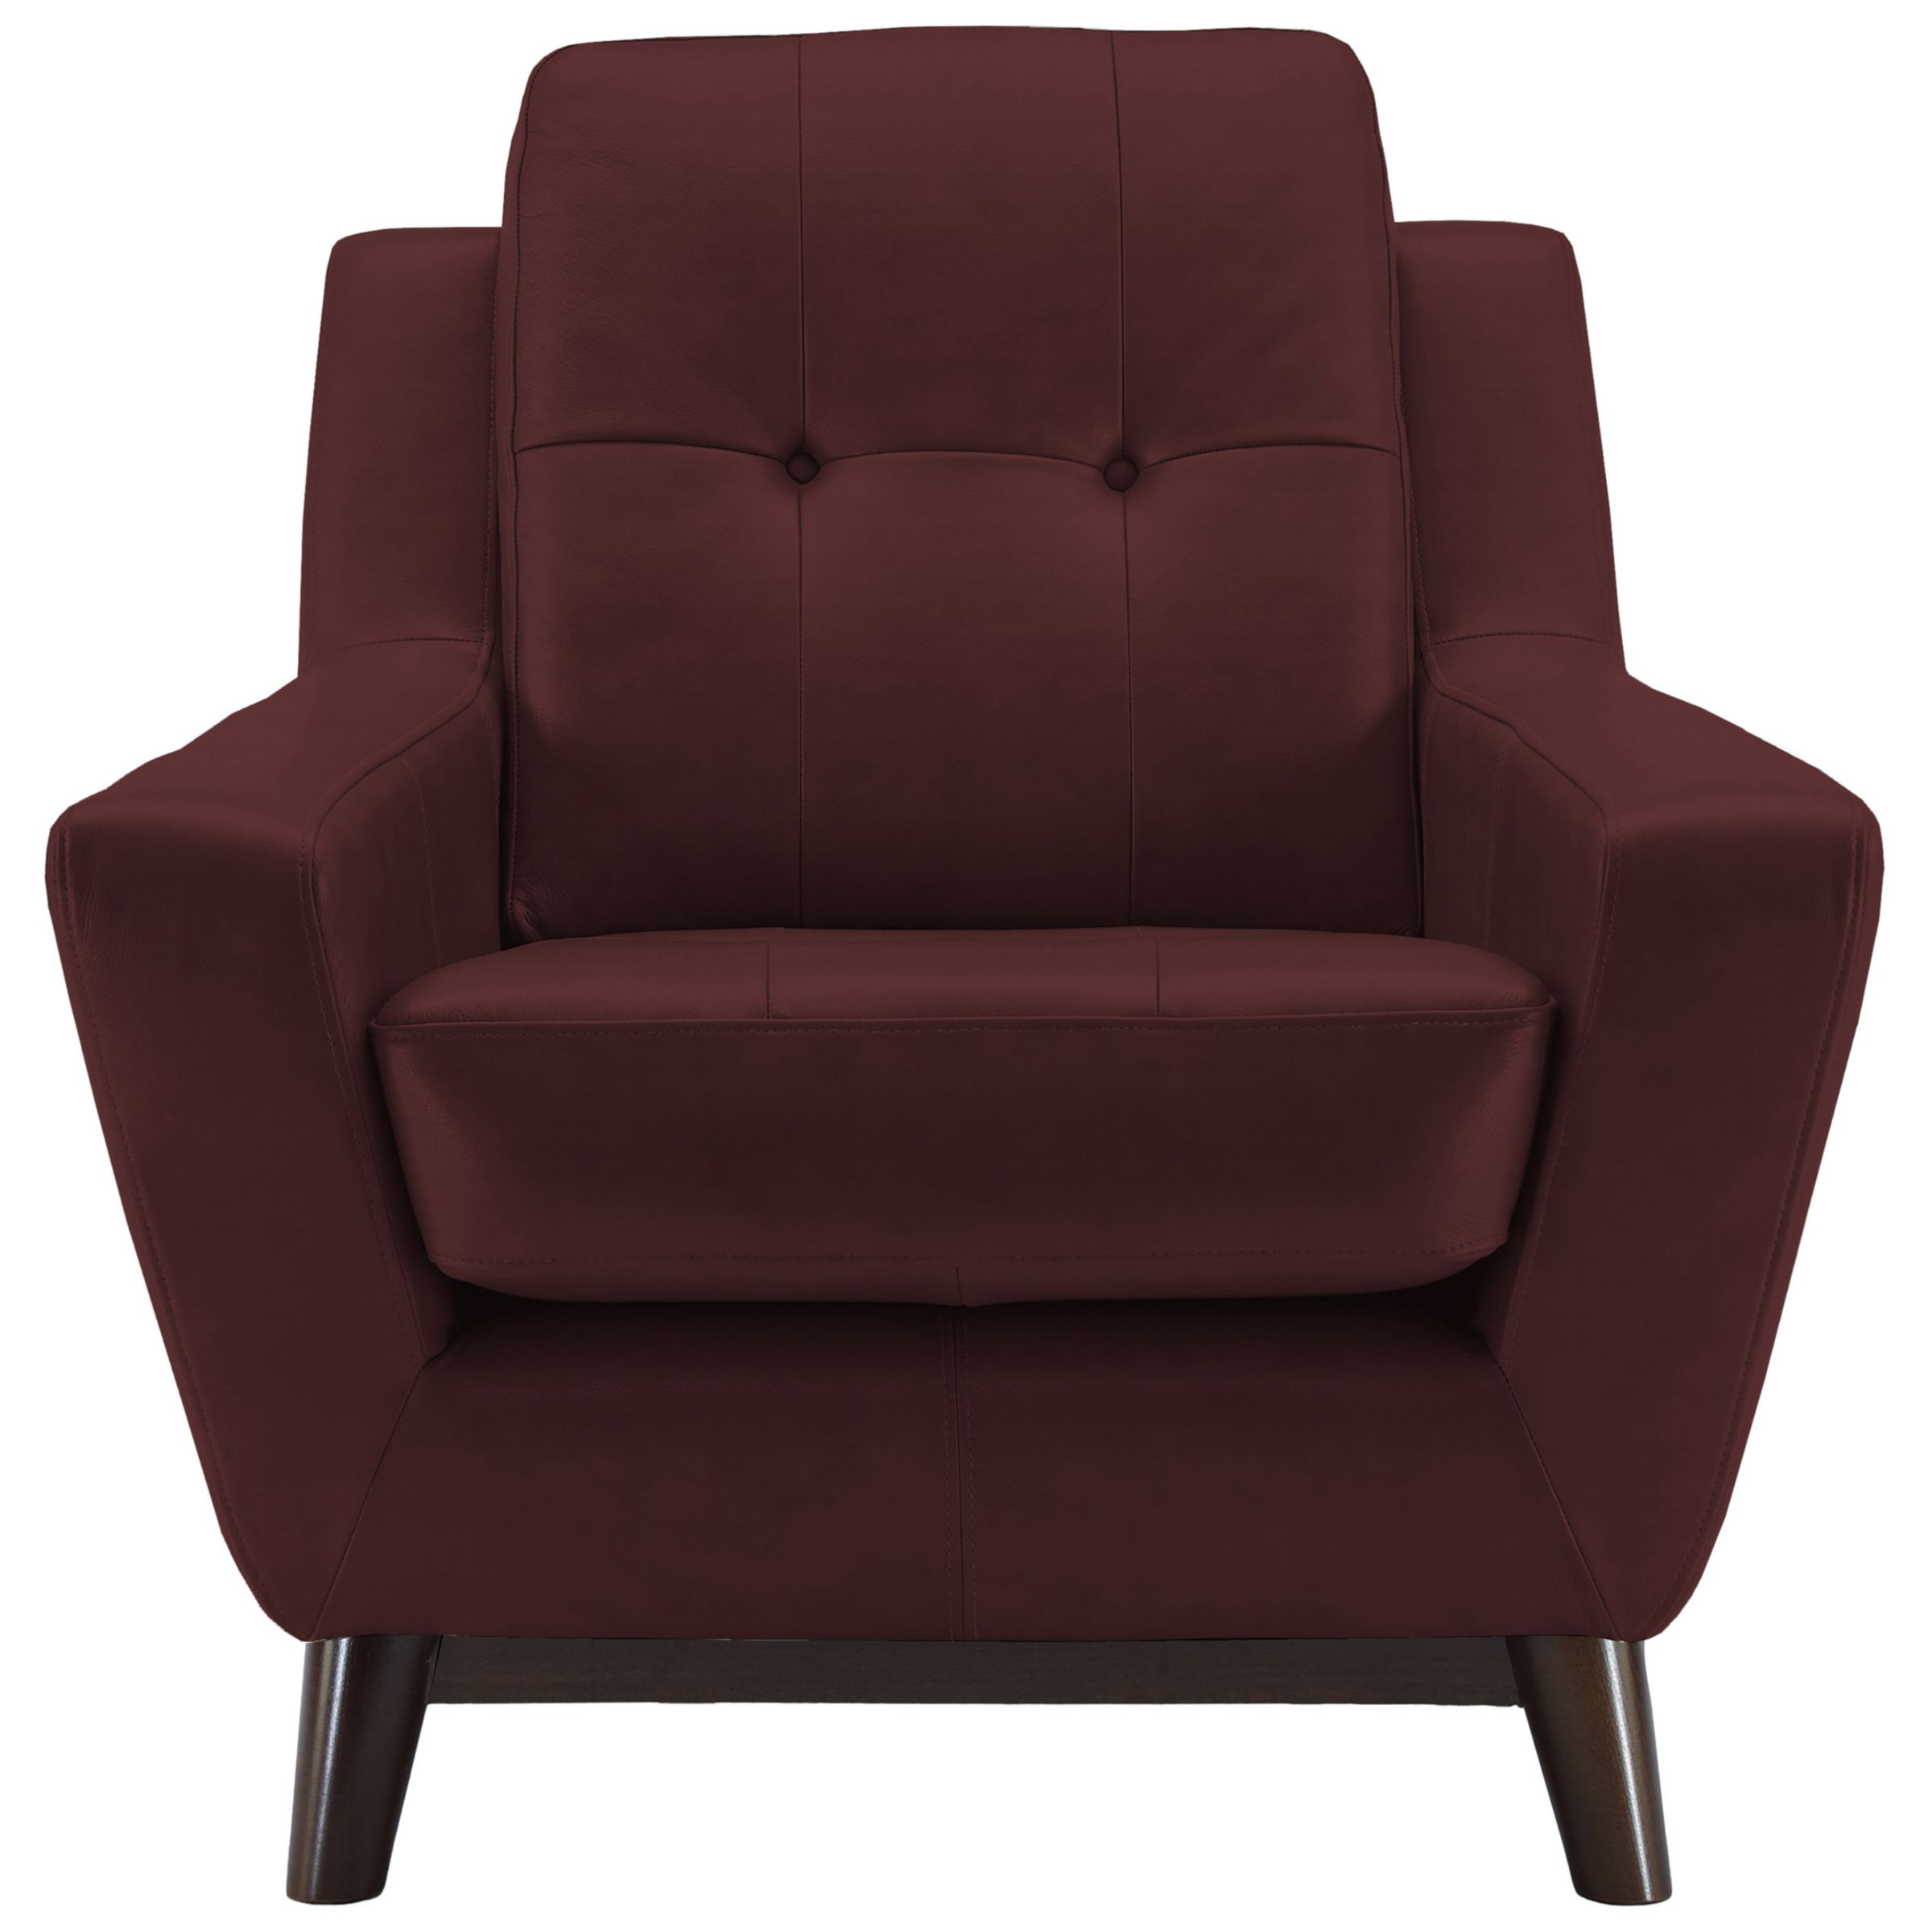 G Plan Vintage G Plan Vintage The Fifty Three Leather Armchair